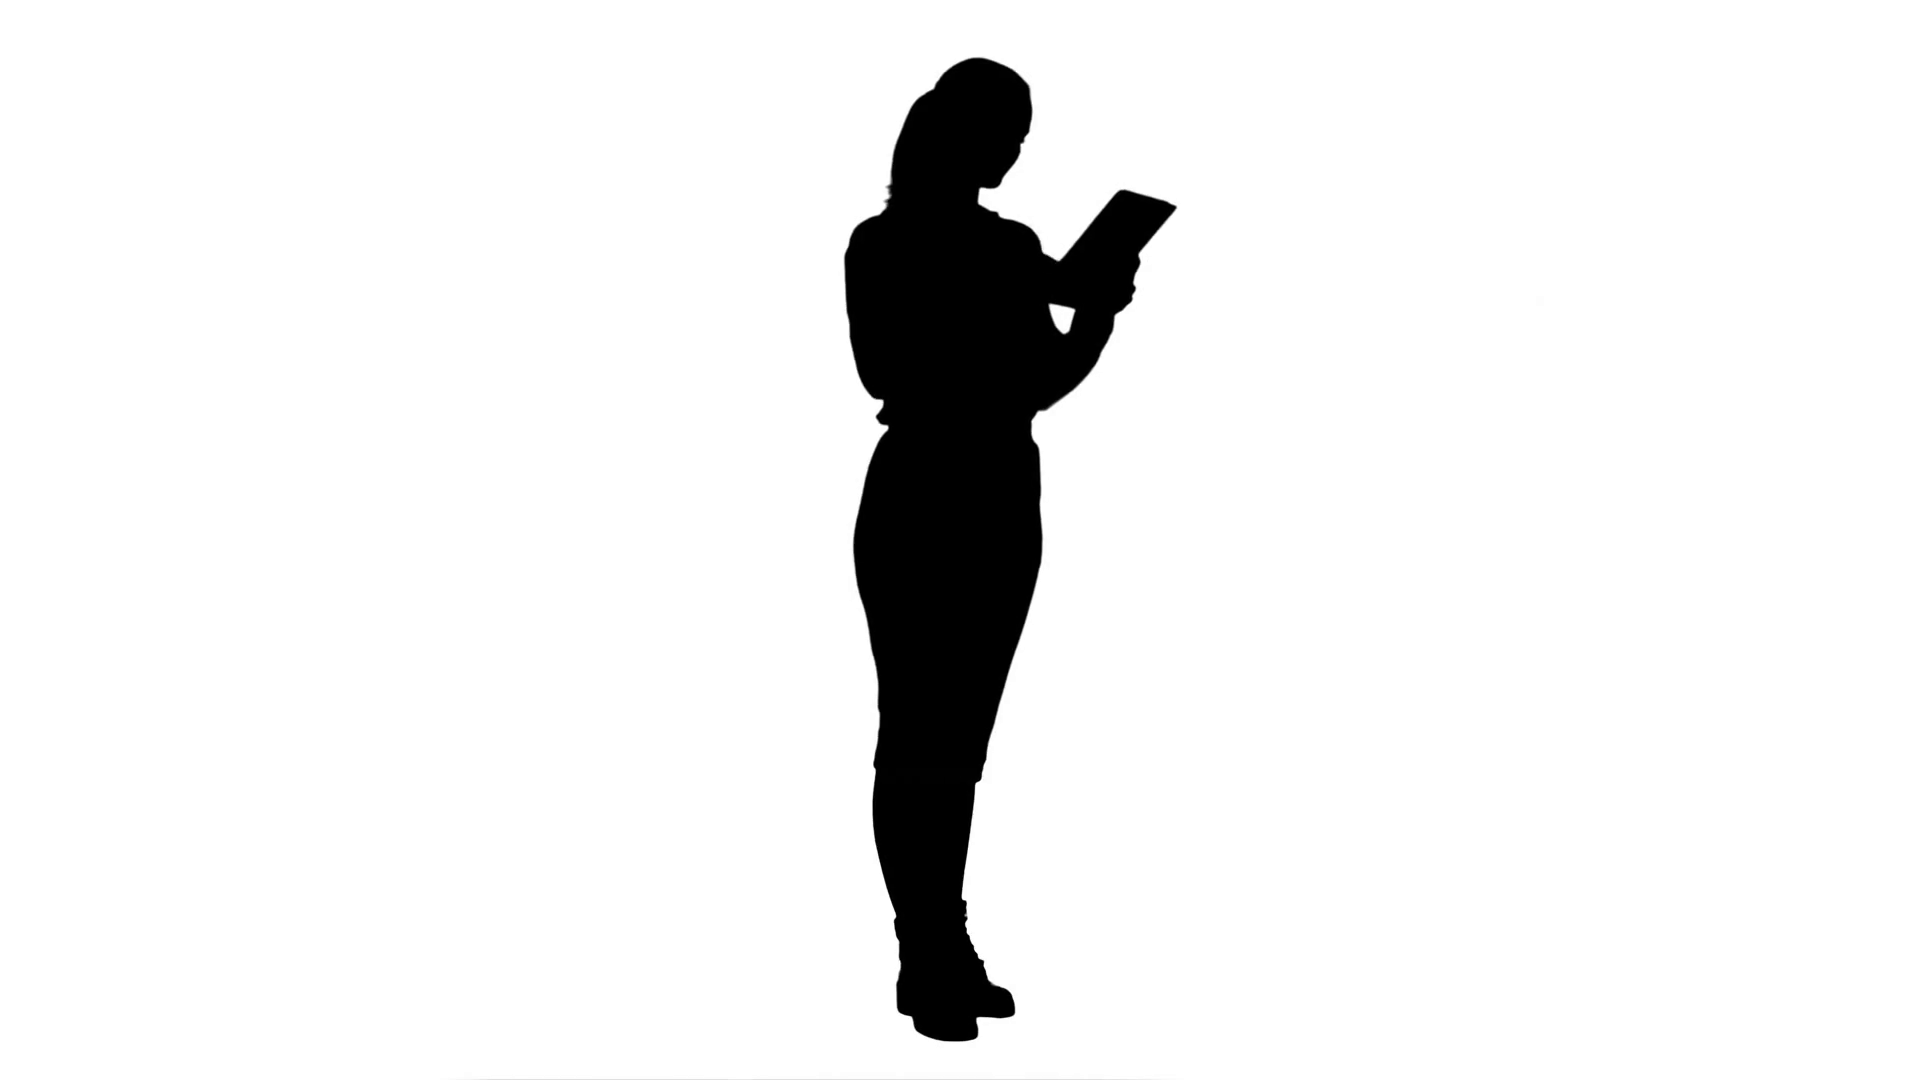 business woman silhouette business woman silhouette png free transparent clipart silhouette woman business